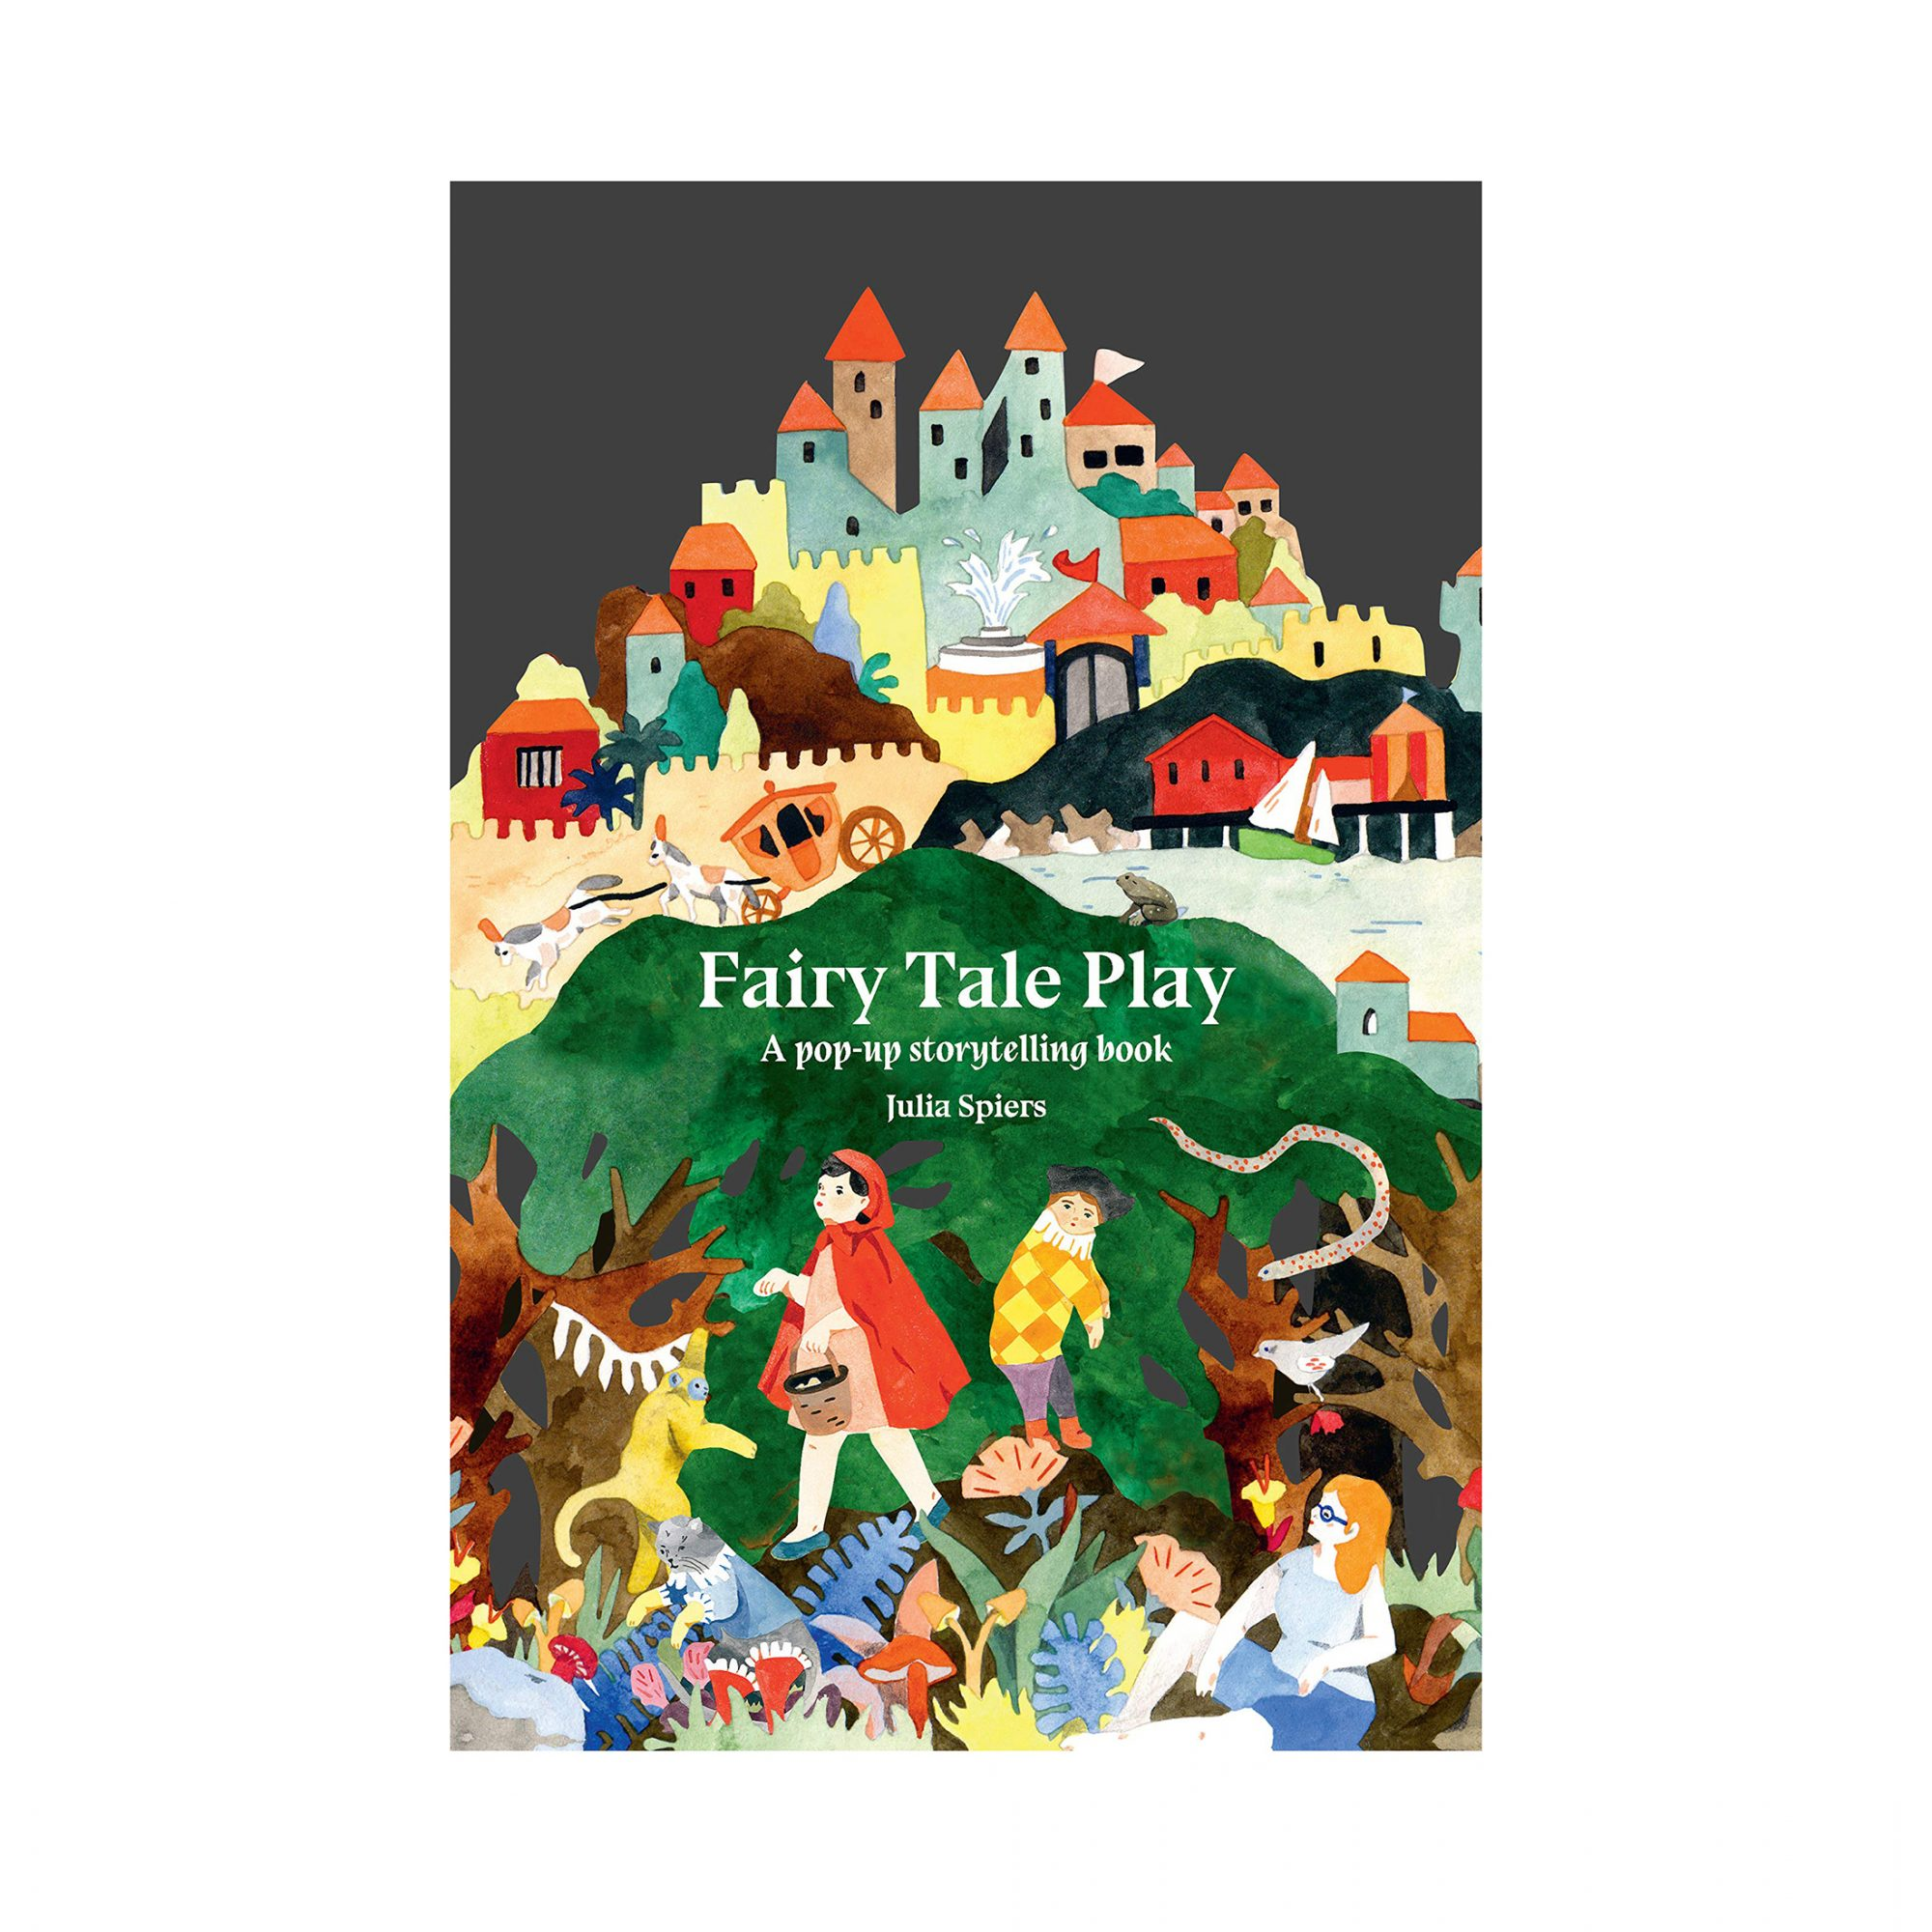 Cool gifts for kids - Fairy Tale Play: A pop-up storytelling book by Julia Spiers